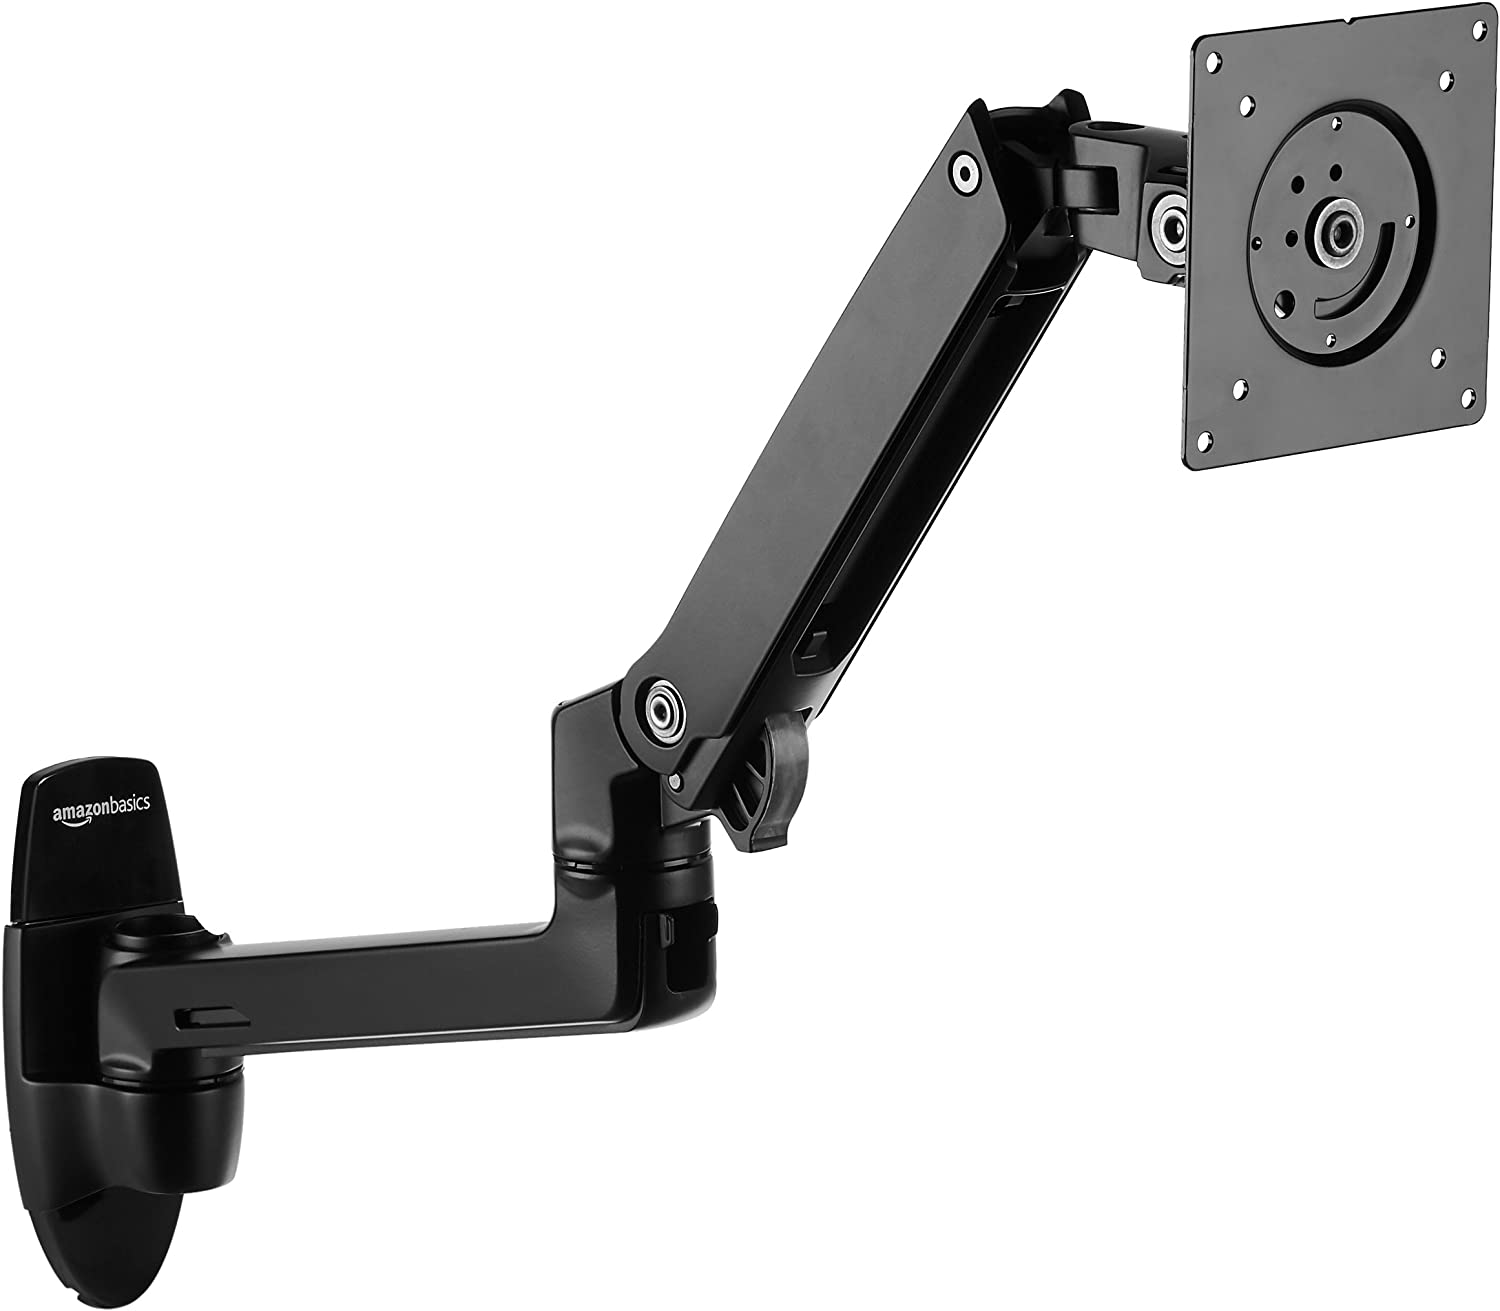 AmazonBasics Premium Wall Mount Monitor Stand - Lift Engine Arm Mount, Aluminum, 2 Pack